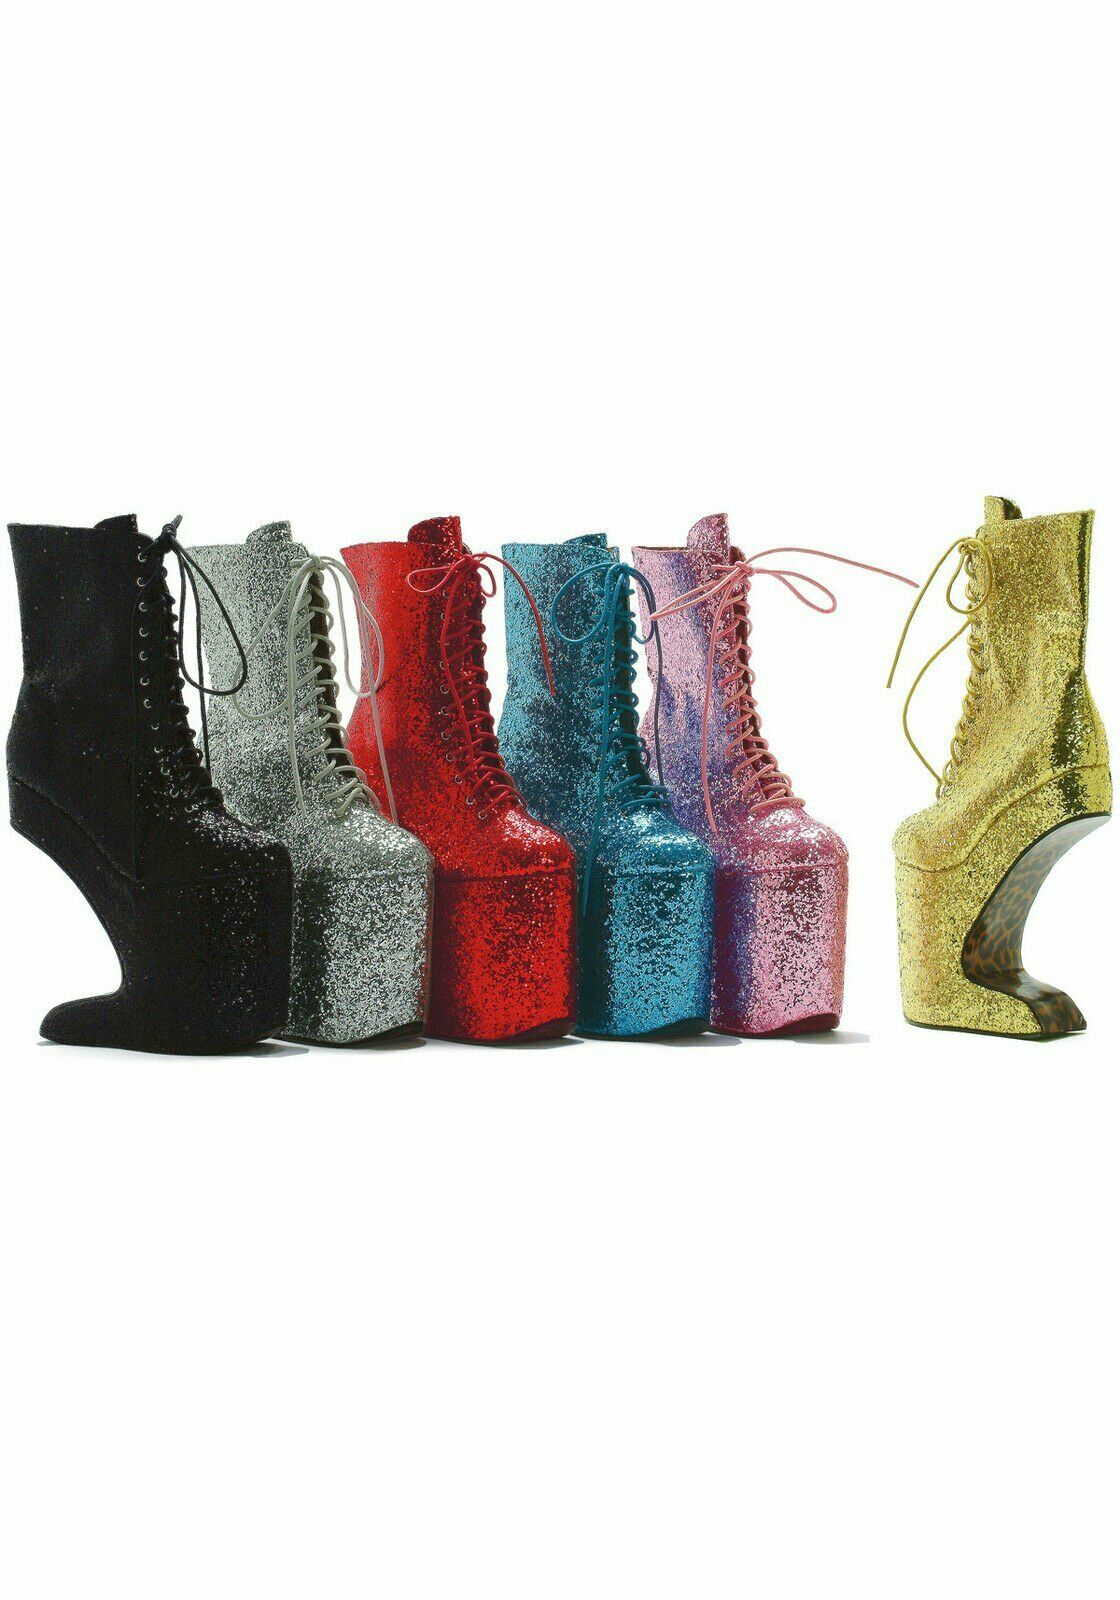 Bettiepage BP579-CHABLIS Women's 5.5 Inch Heel Platform Ankle Boot